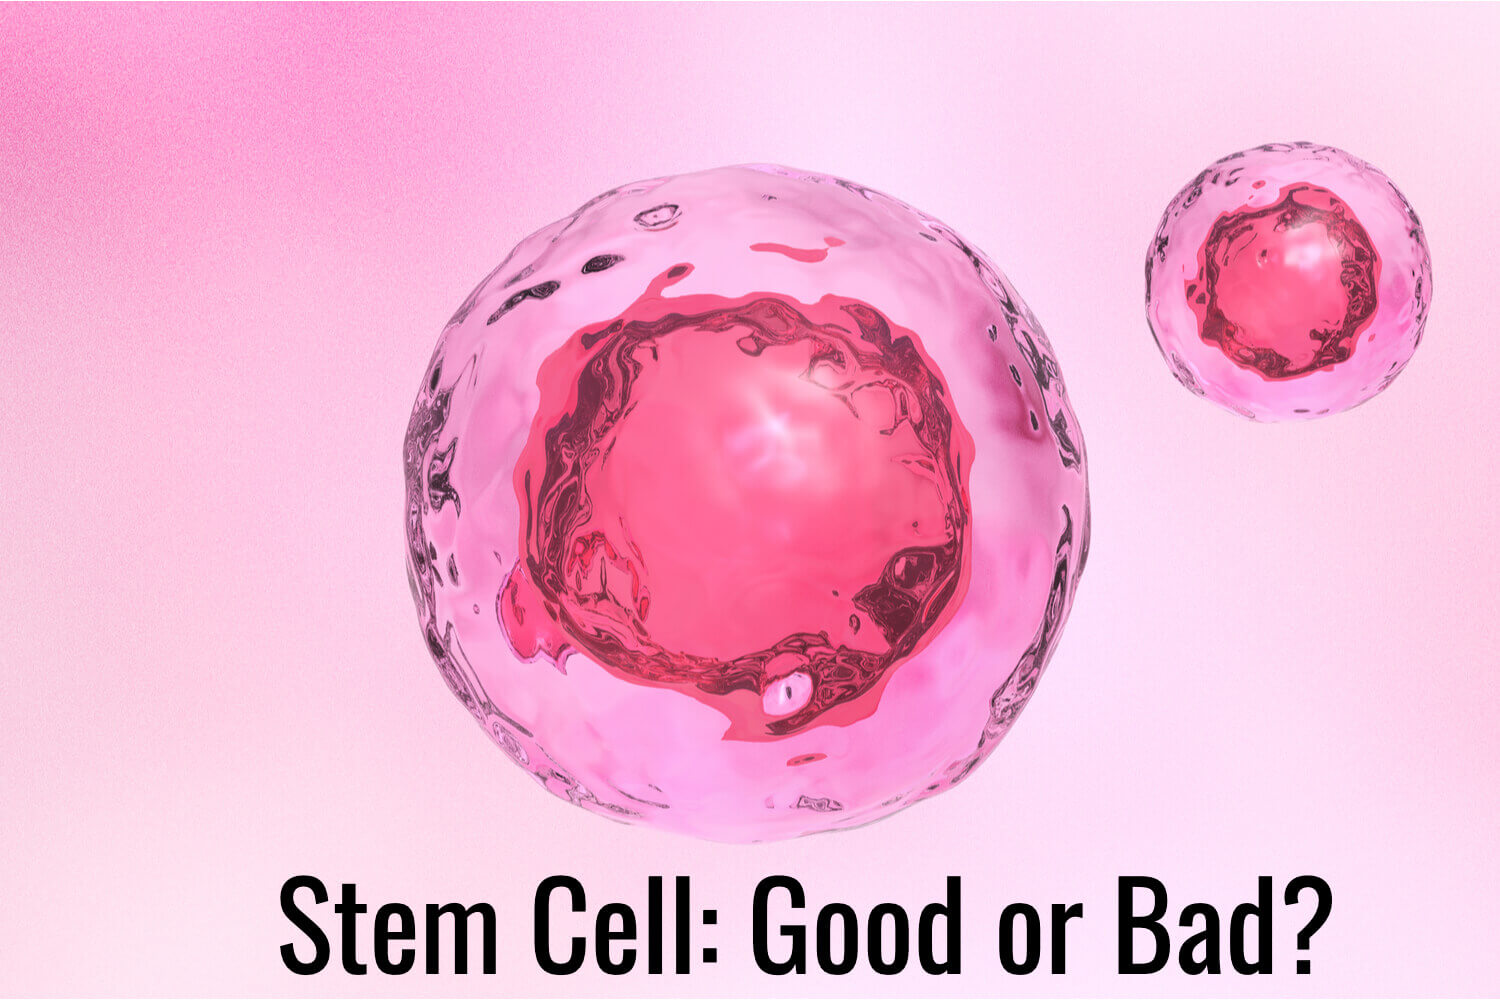 Is Stem Cell Banking Good or Bad?